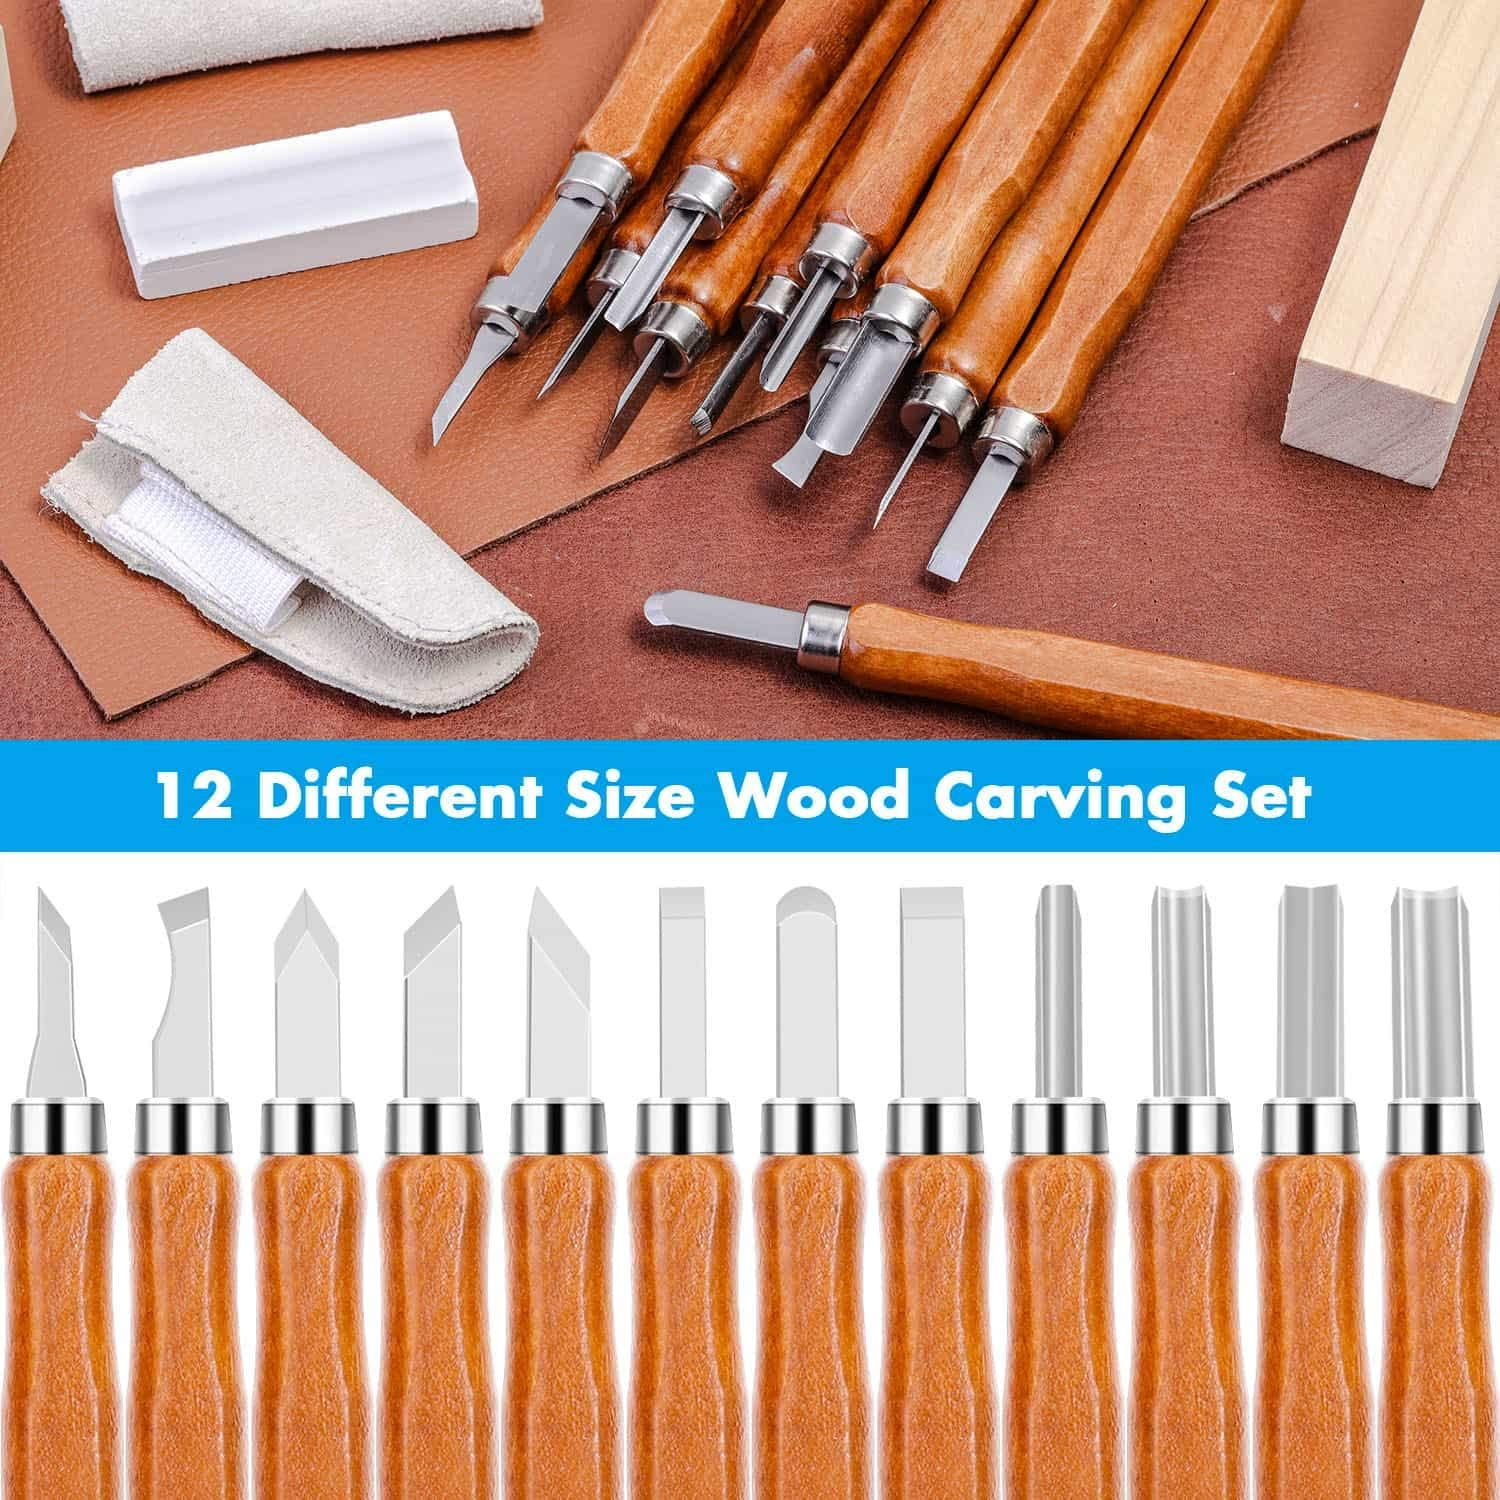 Cridoz 18 Pieces Wood Carving Tools with Basswood Carving Blocks and Whetstone for Beginners Wood Rubber Clay Wood Carving Tools Kit